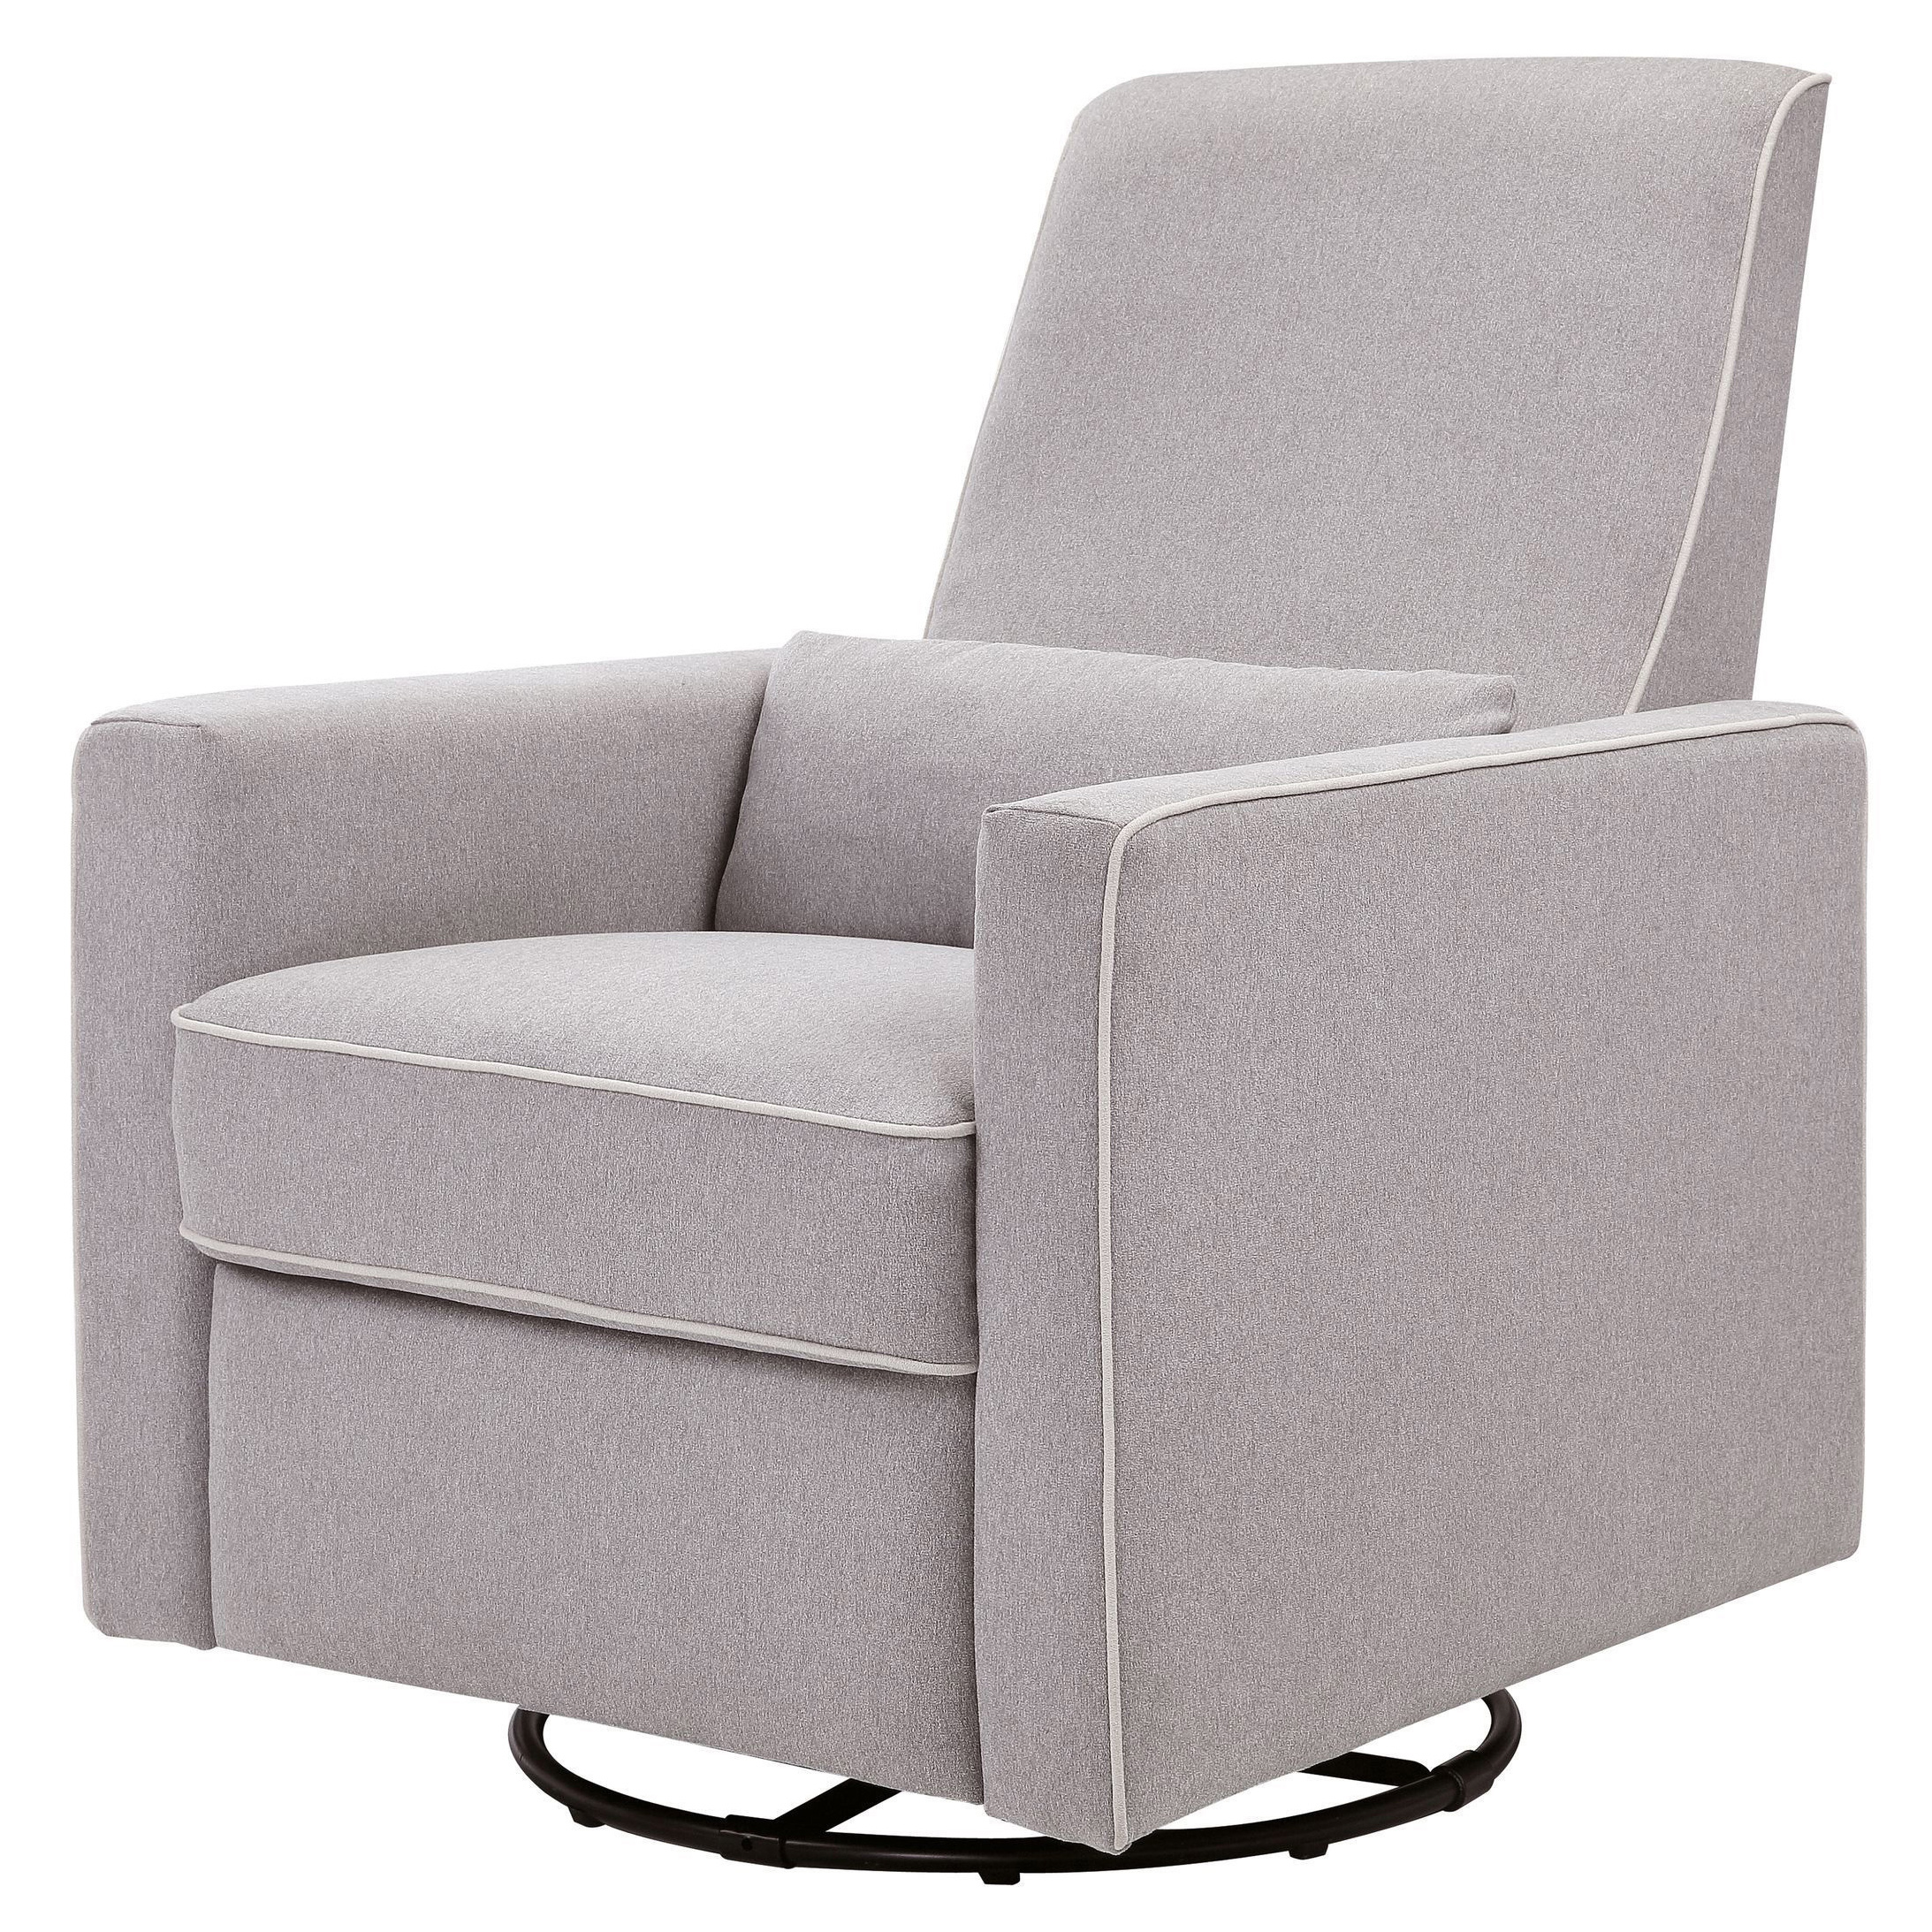 Dutailier Ultramotion | Dutailier Upholstered Glider Slipcover | Dutailier Upholstered Glider